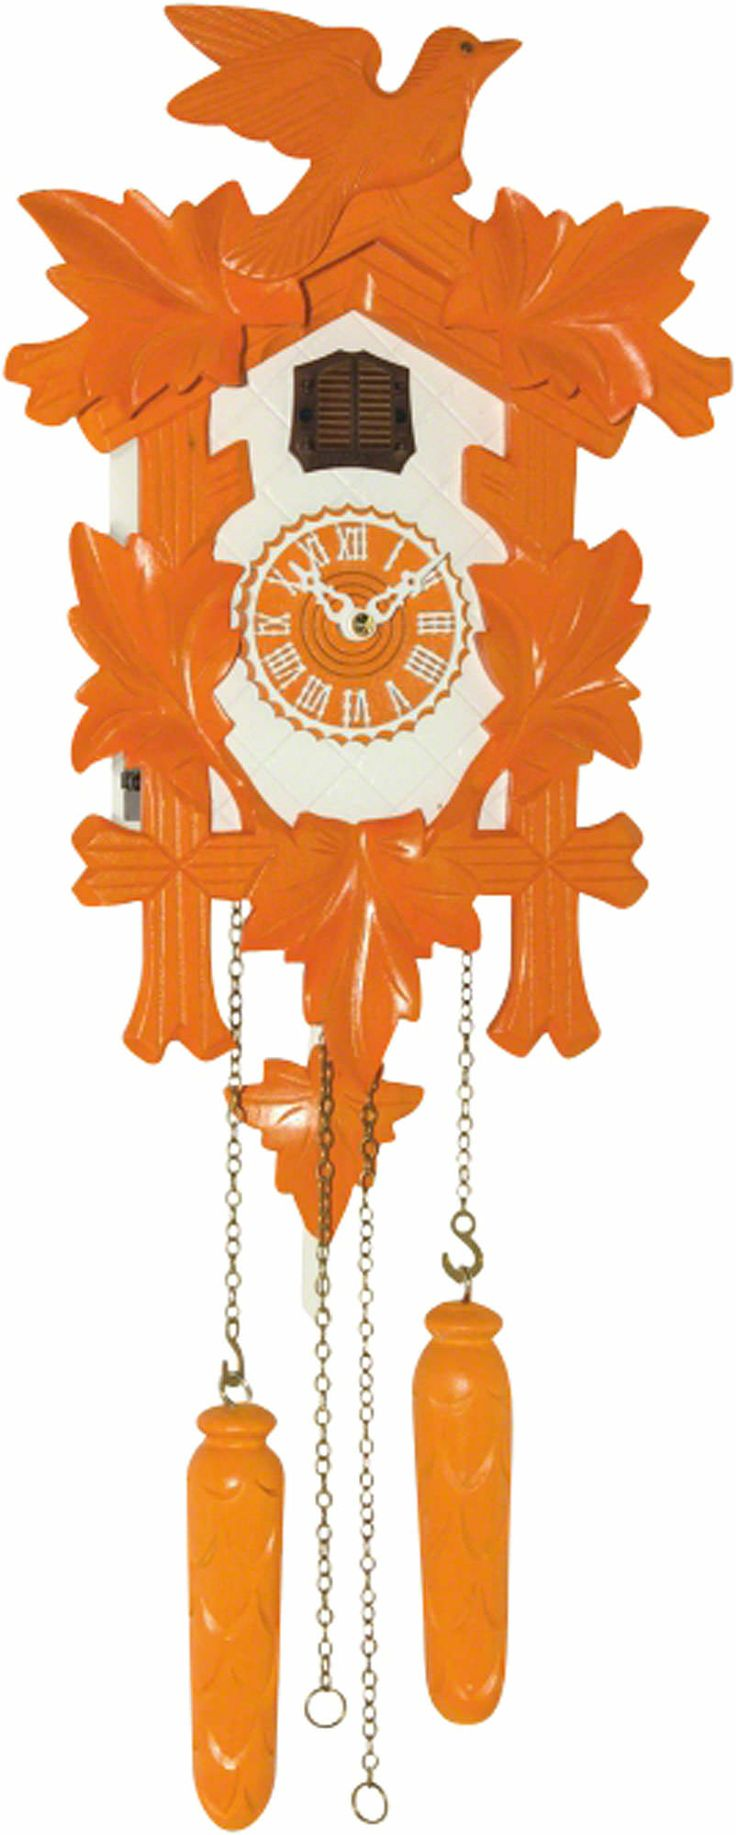 best traditional cuckoo clocks ideas cuckoo  modern art cuckoo clocks modern tradition cuckoo clock quartz movement modern art style